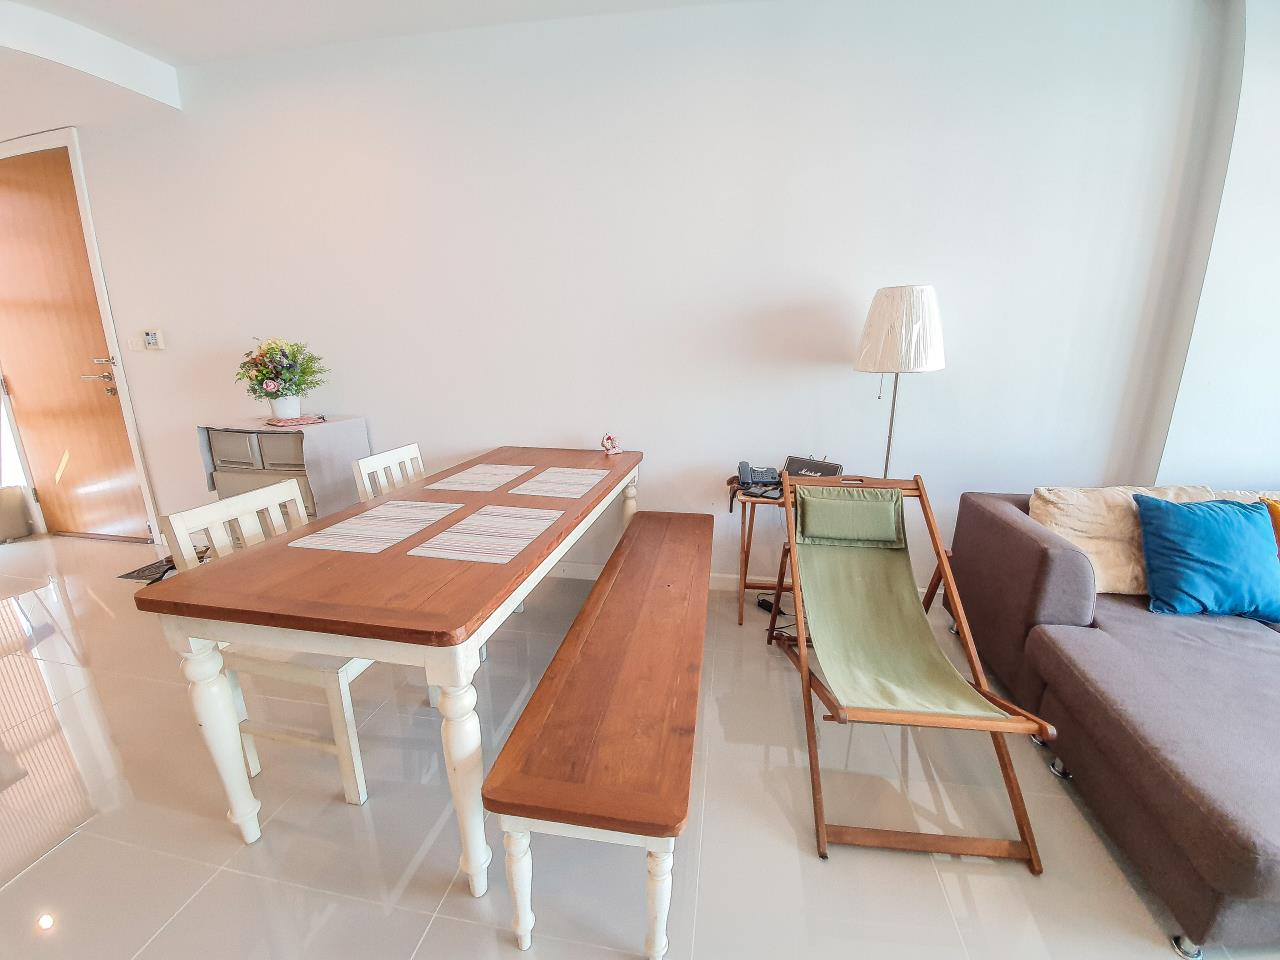 HOME - Real Estate Service Agency's The Breeze Hua Hin / 2 Beds (FOR RENT), เดอะ บรีซ หัวหิน / 2 ห้องนอน (ให้เช่า) T008 2